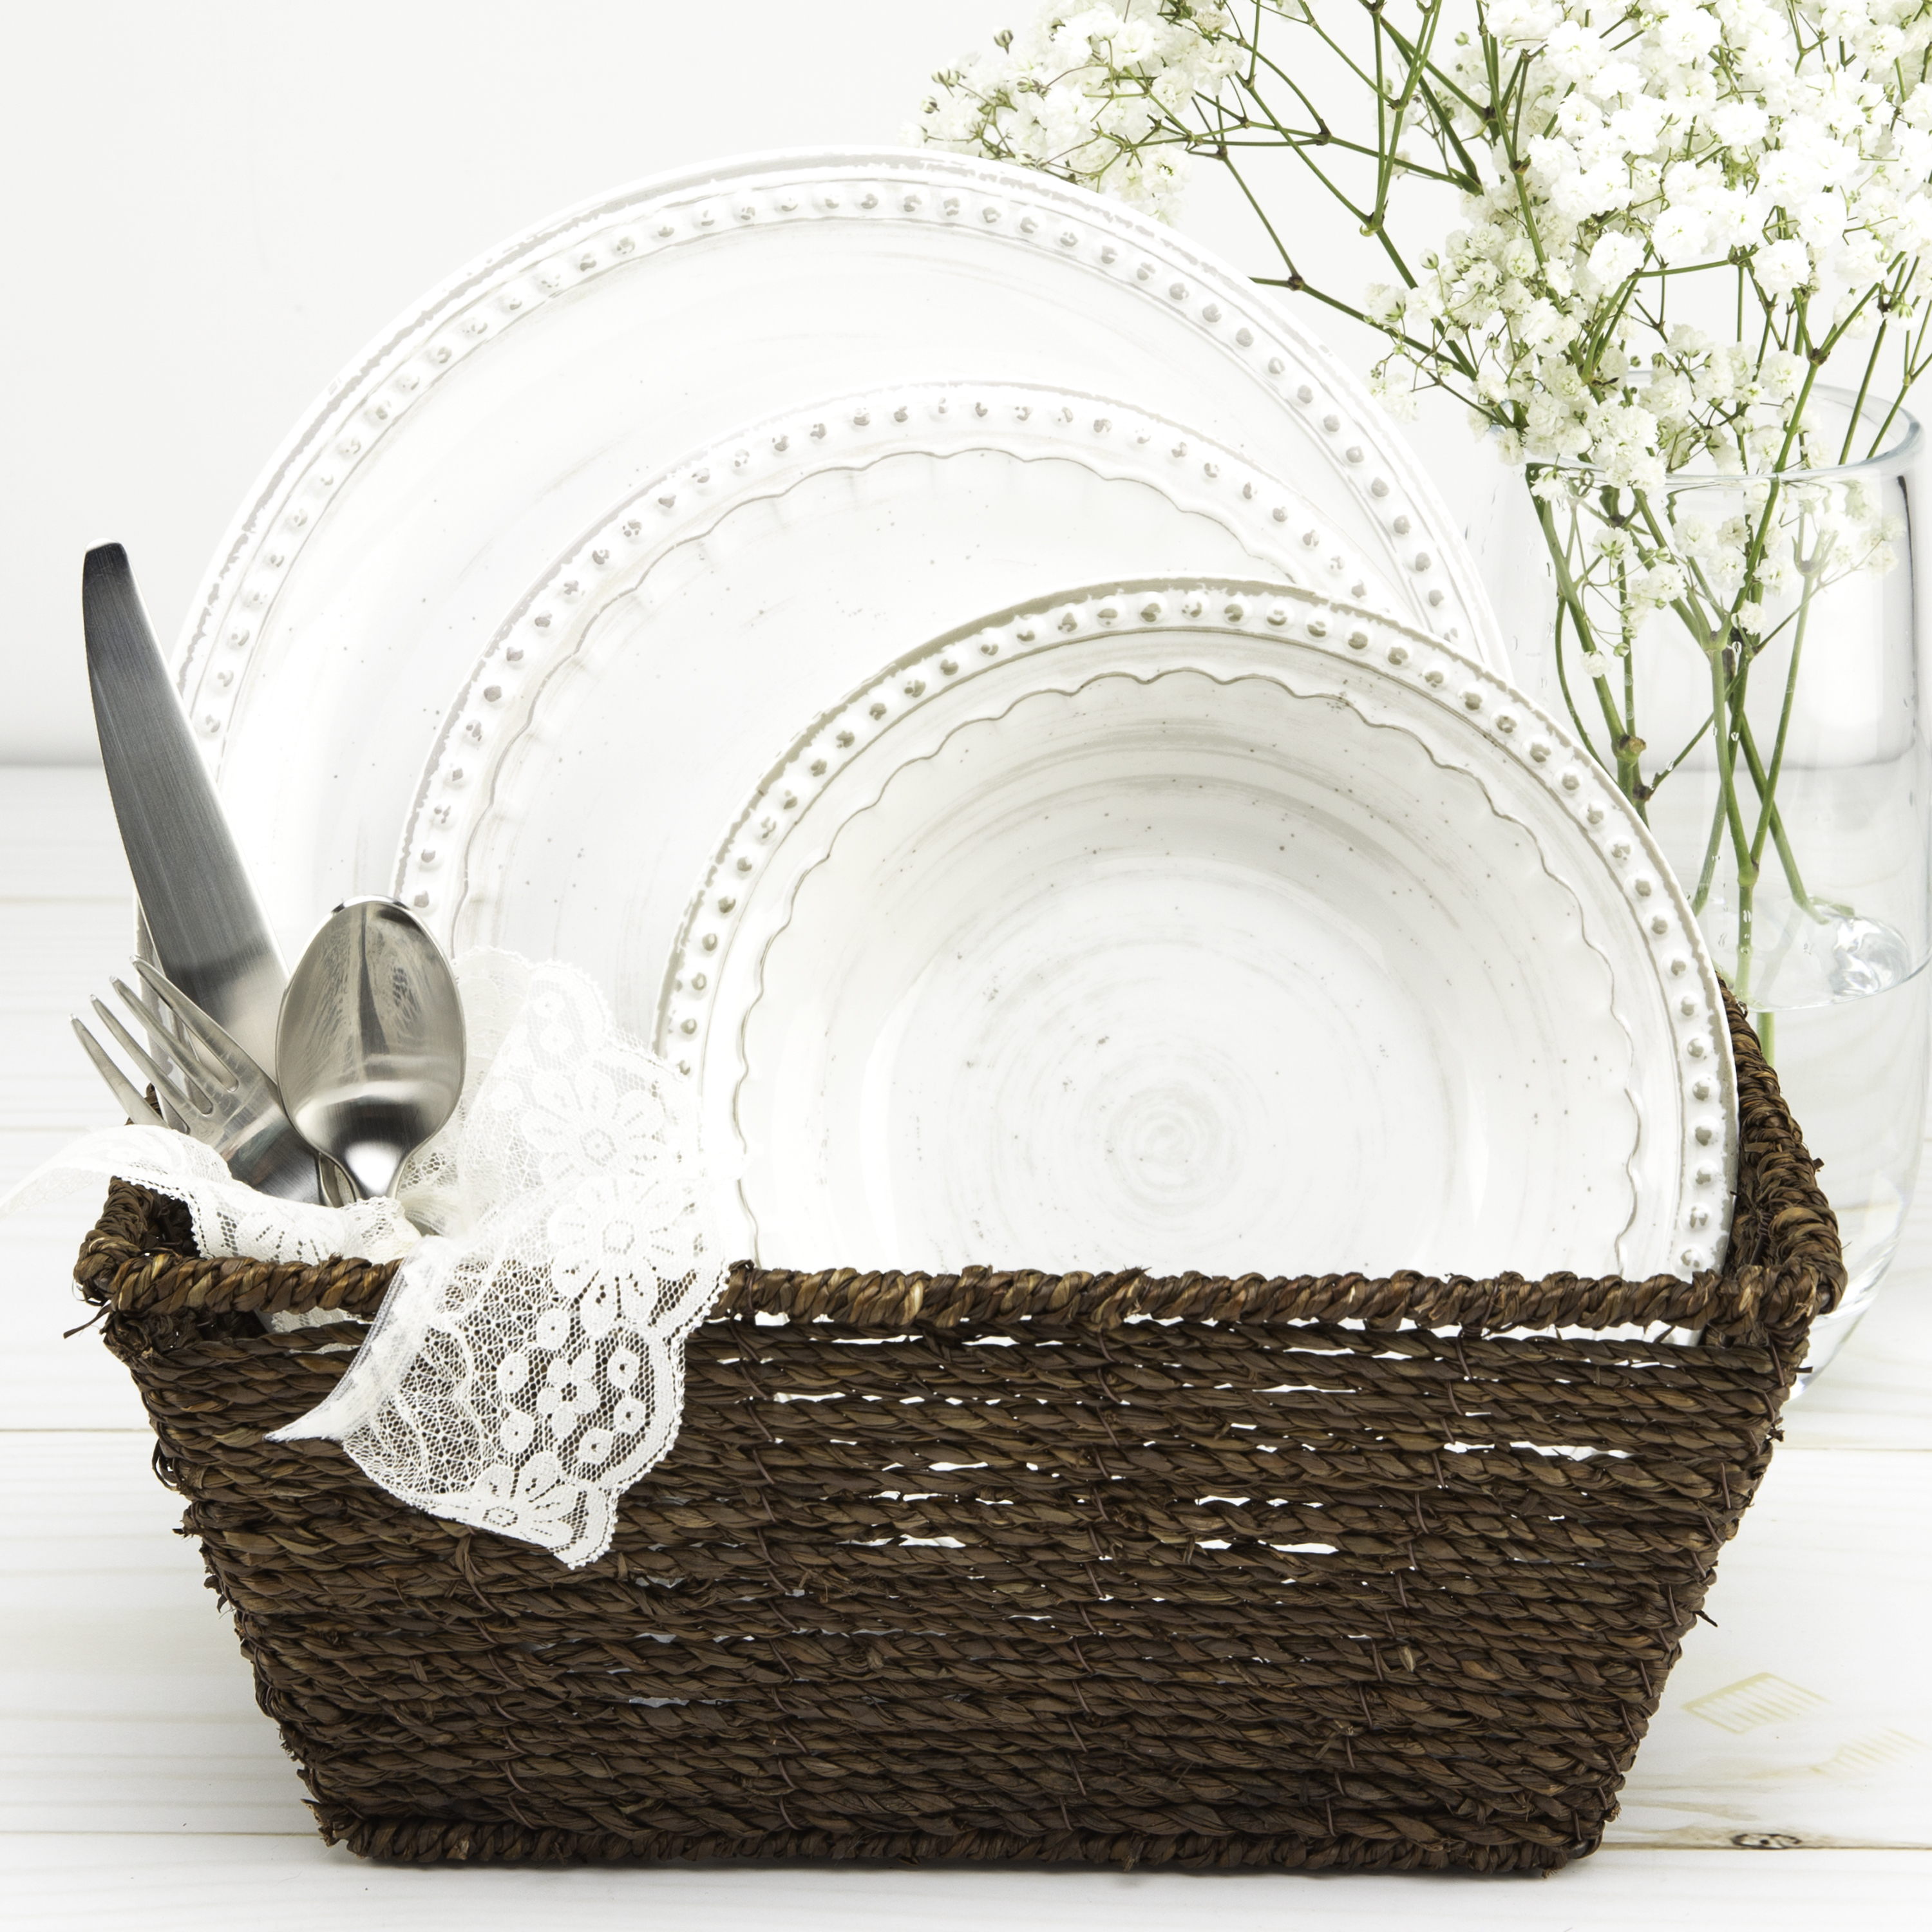 French Country Plate & Bowl Sets, White, 12-piece set slideshow image 9